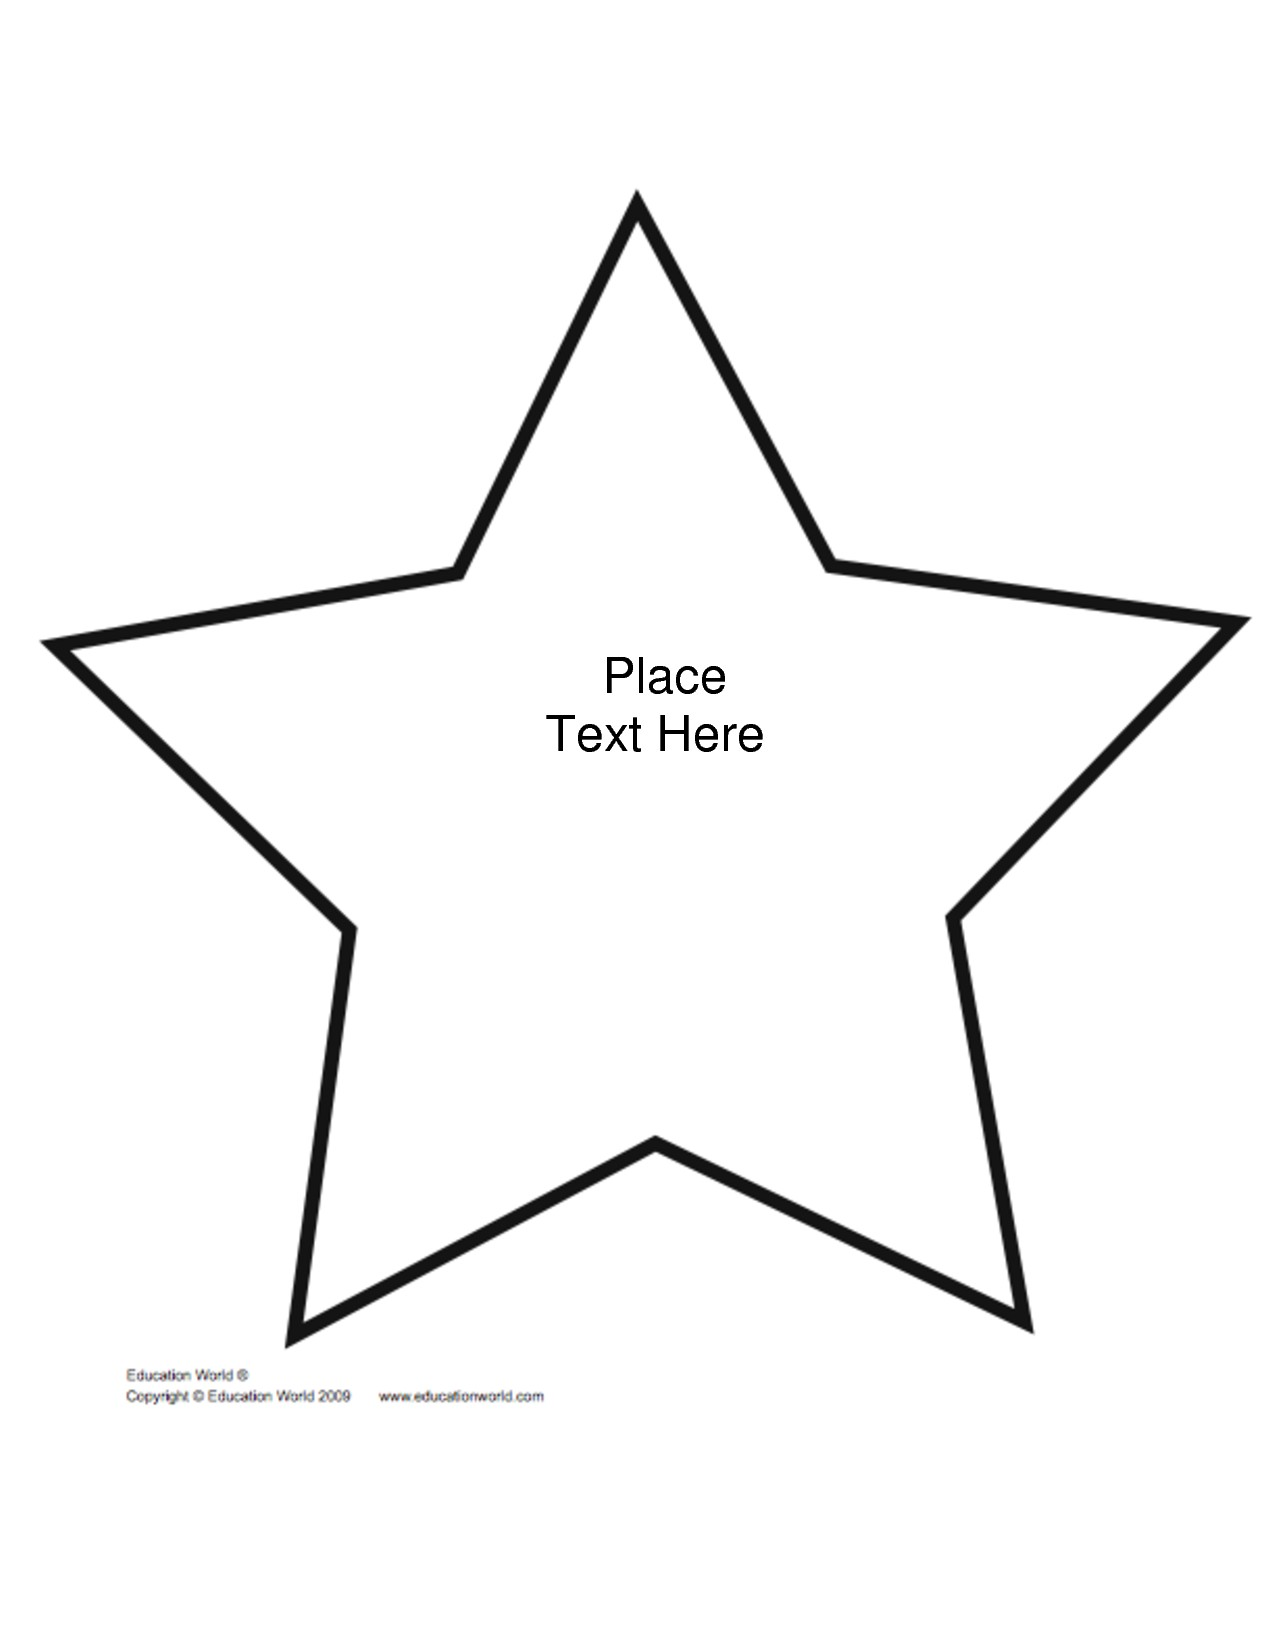 graphic regarding Free Printable Stars titled Star Define Printable Cost-free obtain suitable Star Determine